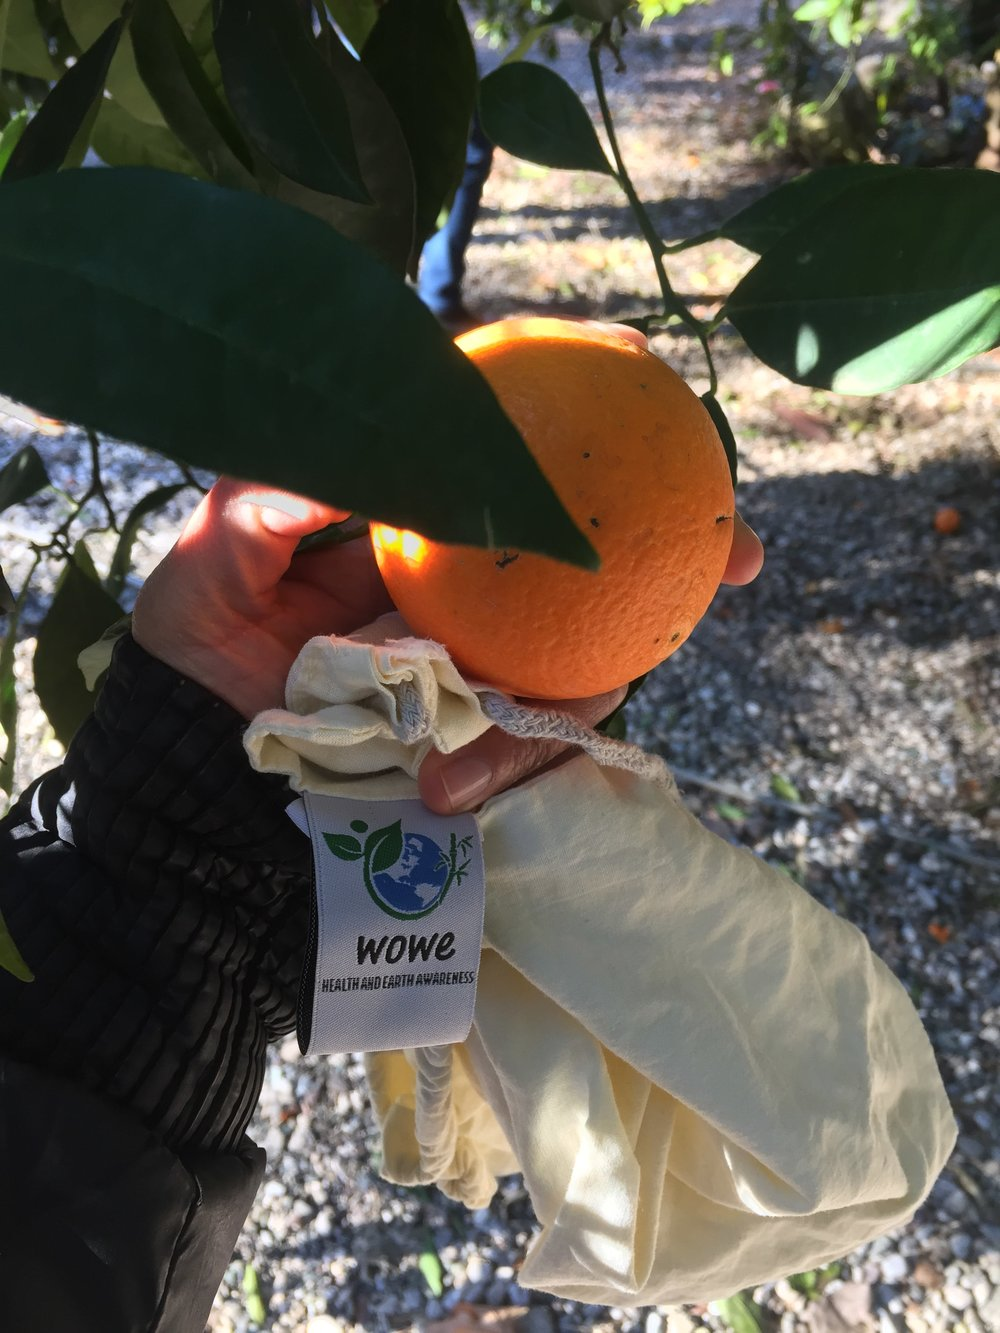 My WowE bags came in handy when we happened by an orange tree and were able to pick up from fresh oranges and mandarins in the South of Turkey.